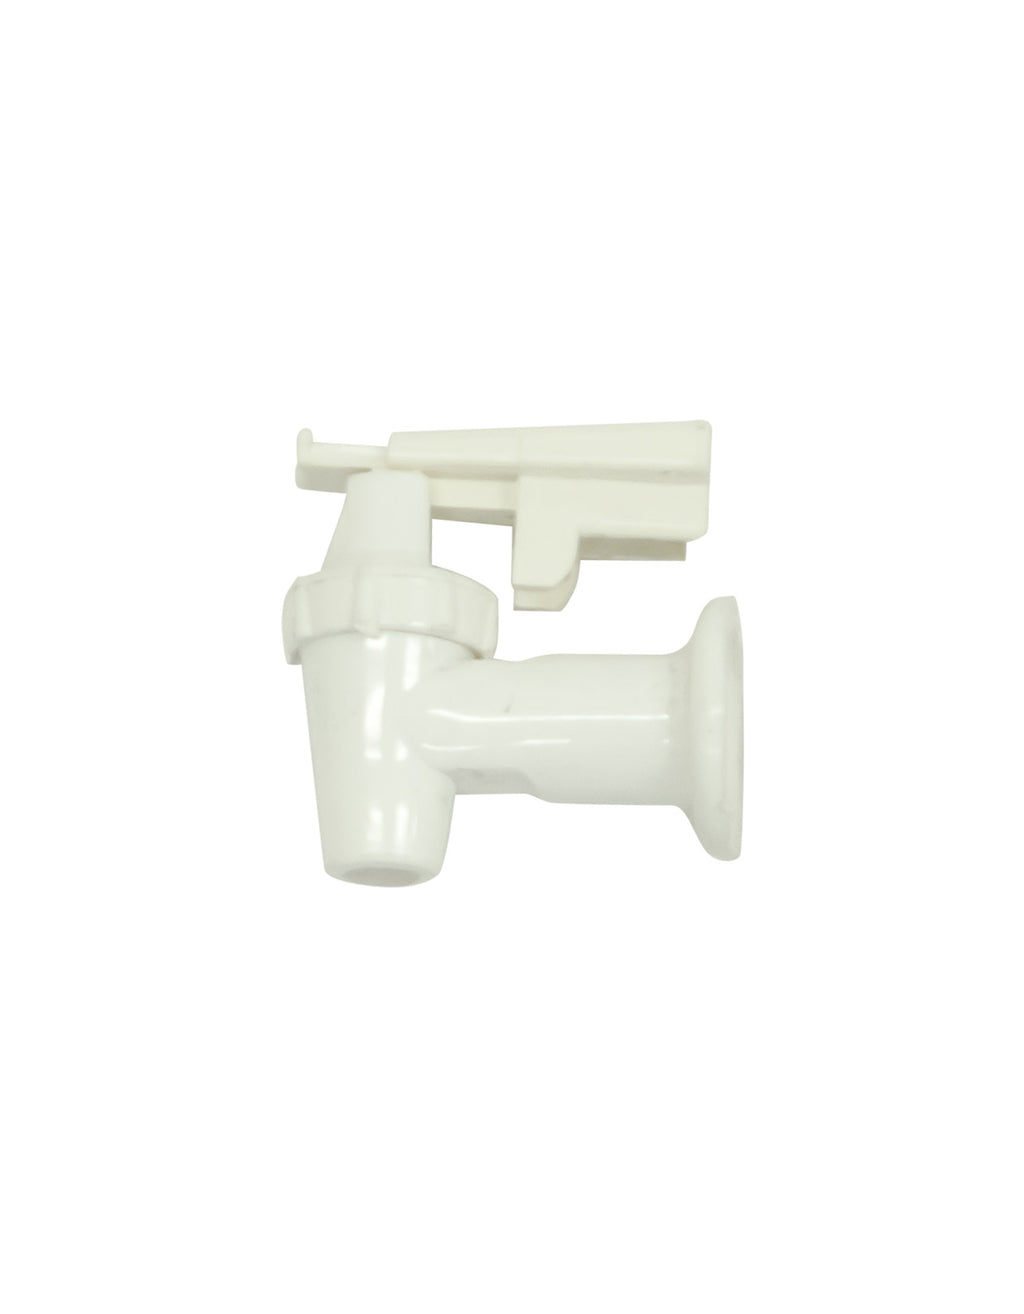 Tap - White Lever/White Body C/Proof AM